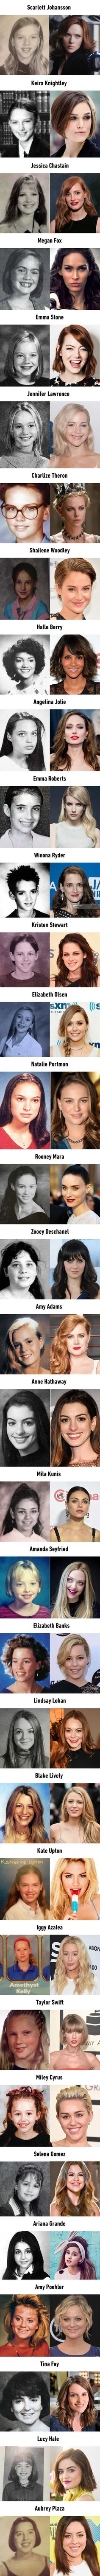 Female celebs' yearbook photos